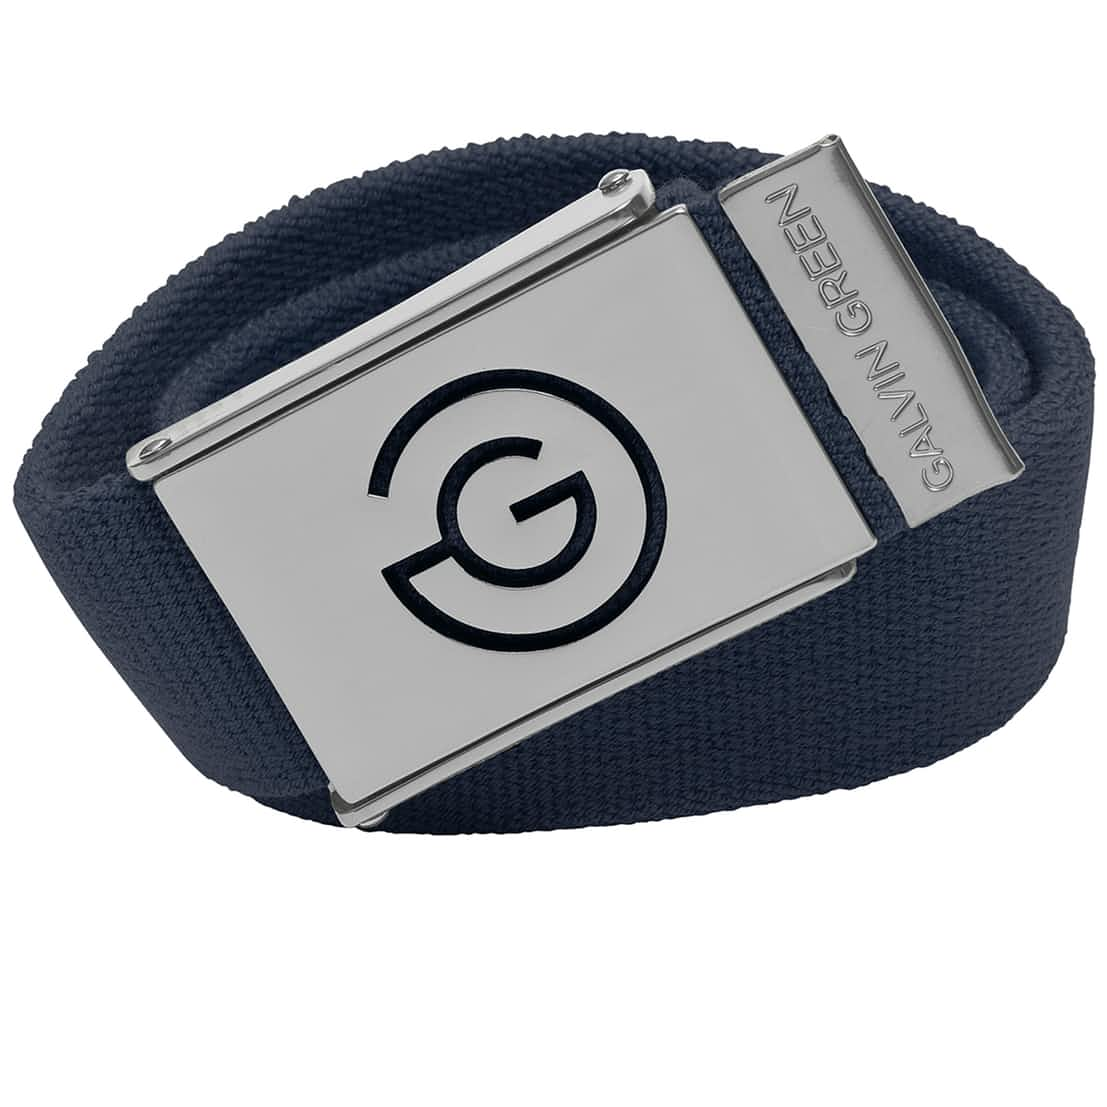 Warren Nylon Belt Navy - 2020